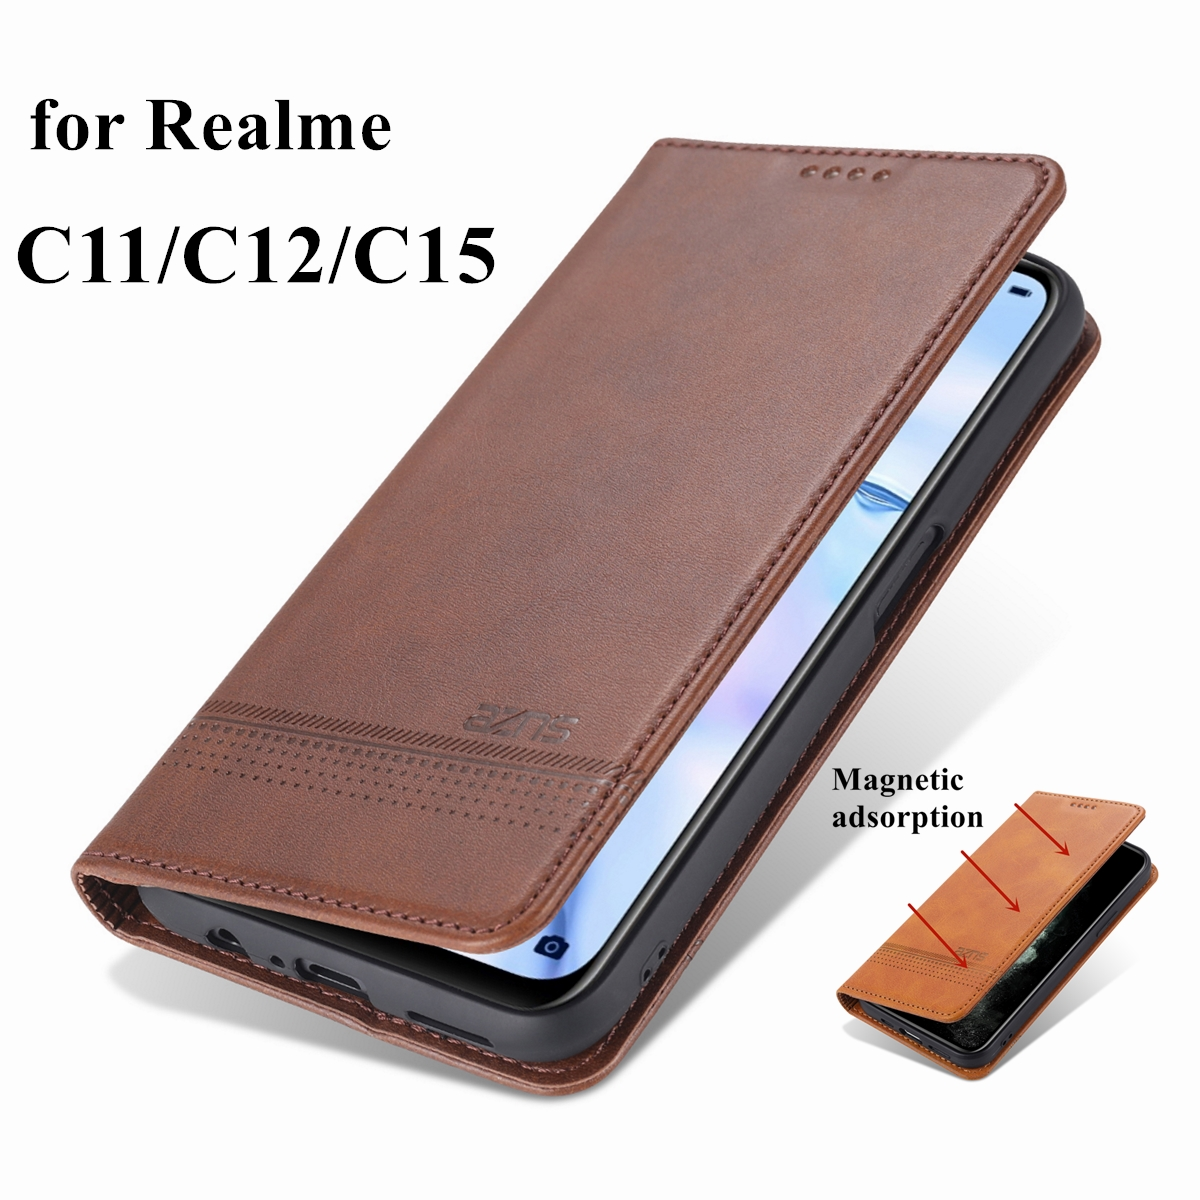 Deluxe magnetic adsorption leather case for OPPO Realme C15 C12 C11 flip cover wallet protective case capa fundas